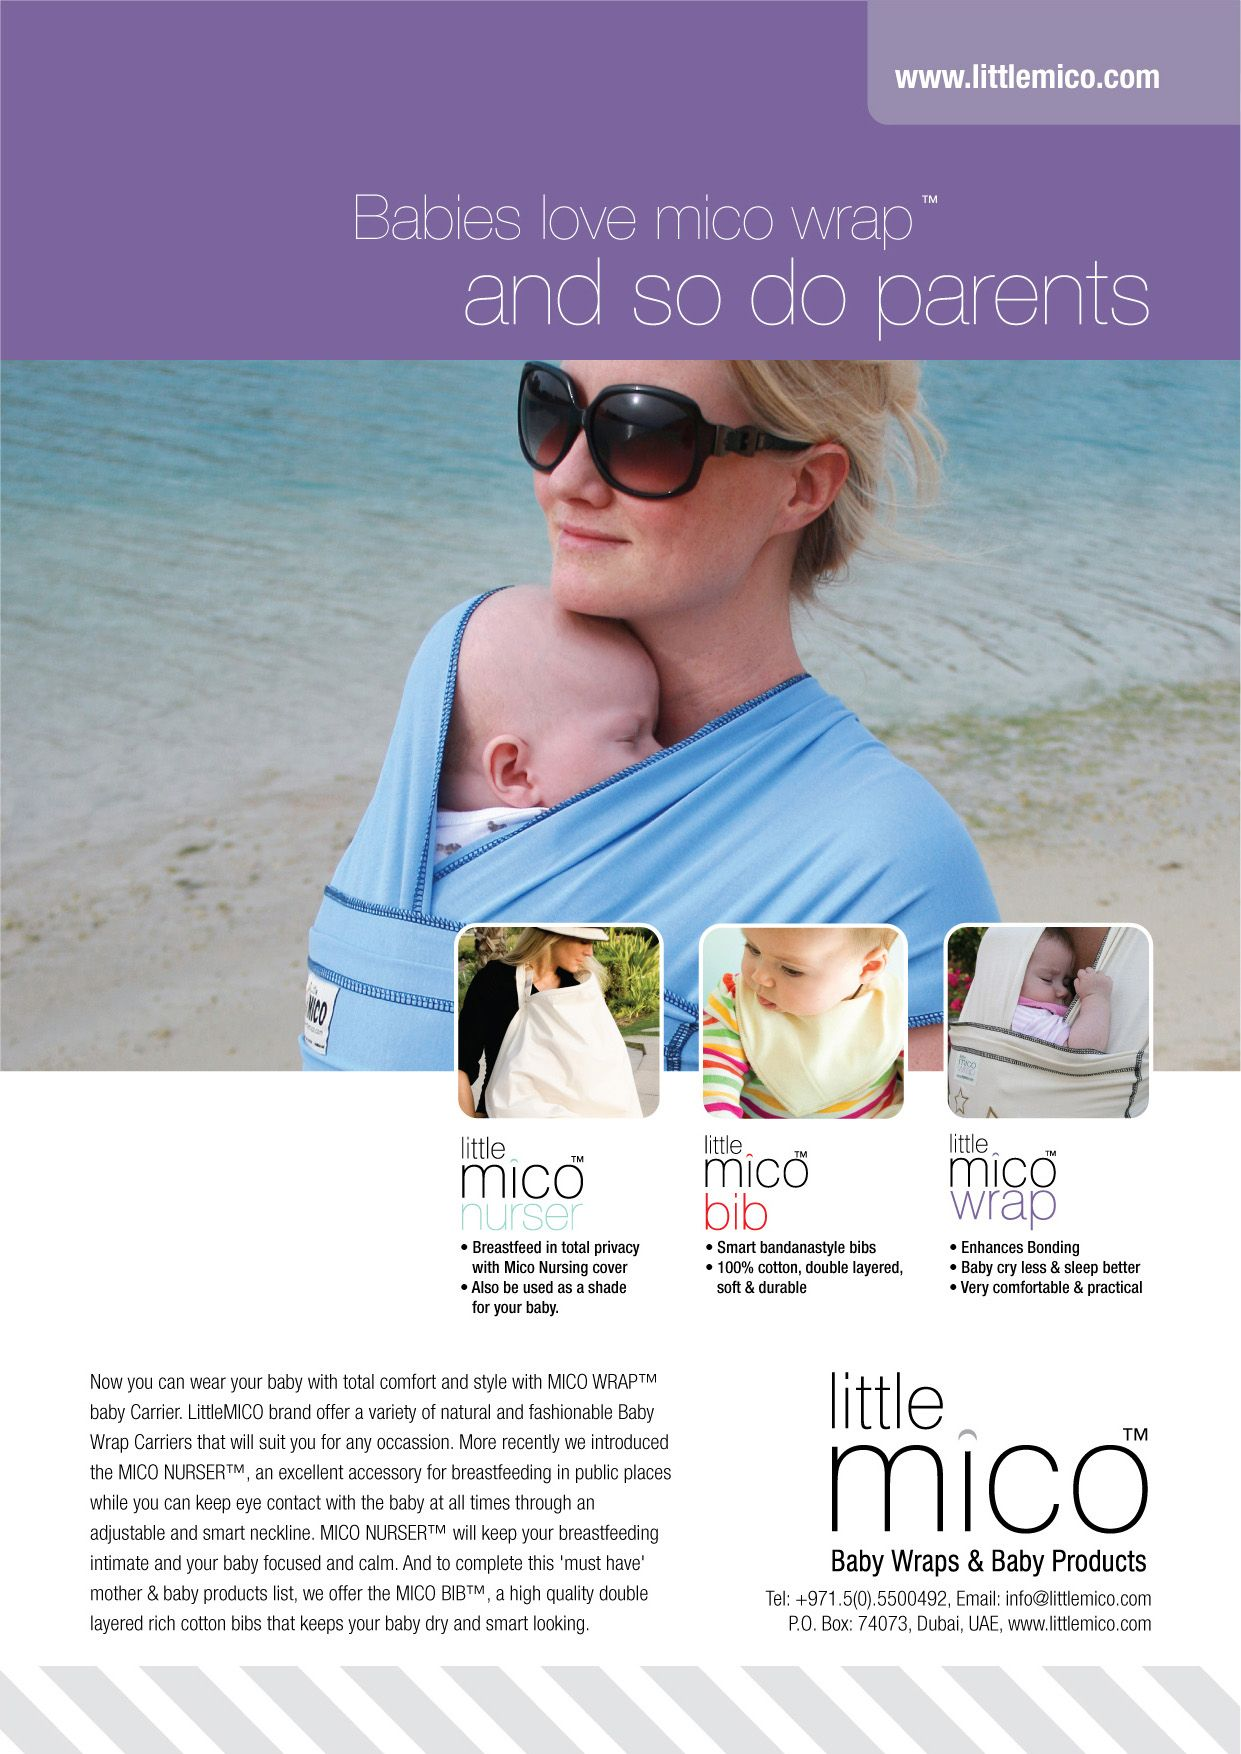 Littlemico Baby Wrap Carriers Nursing Cover Ad Advertising